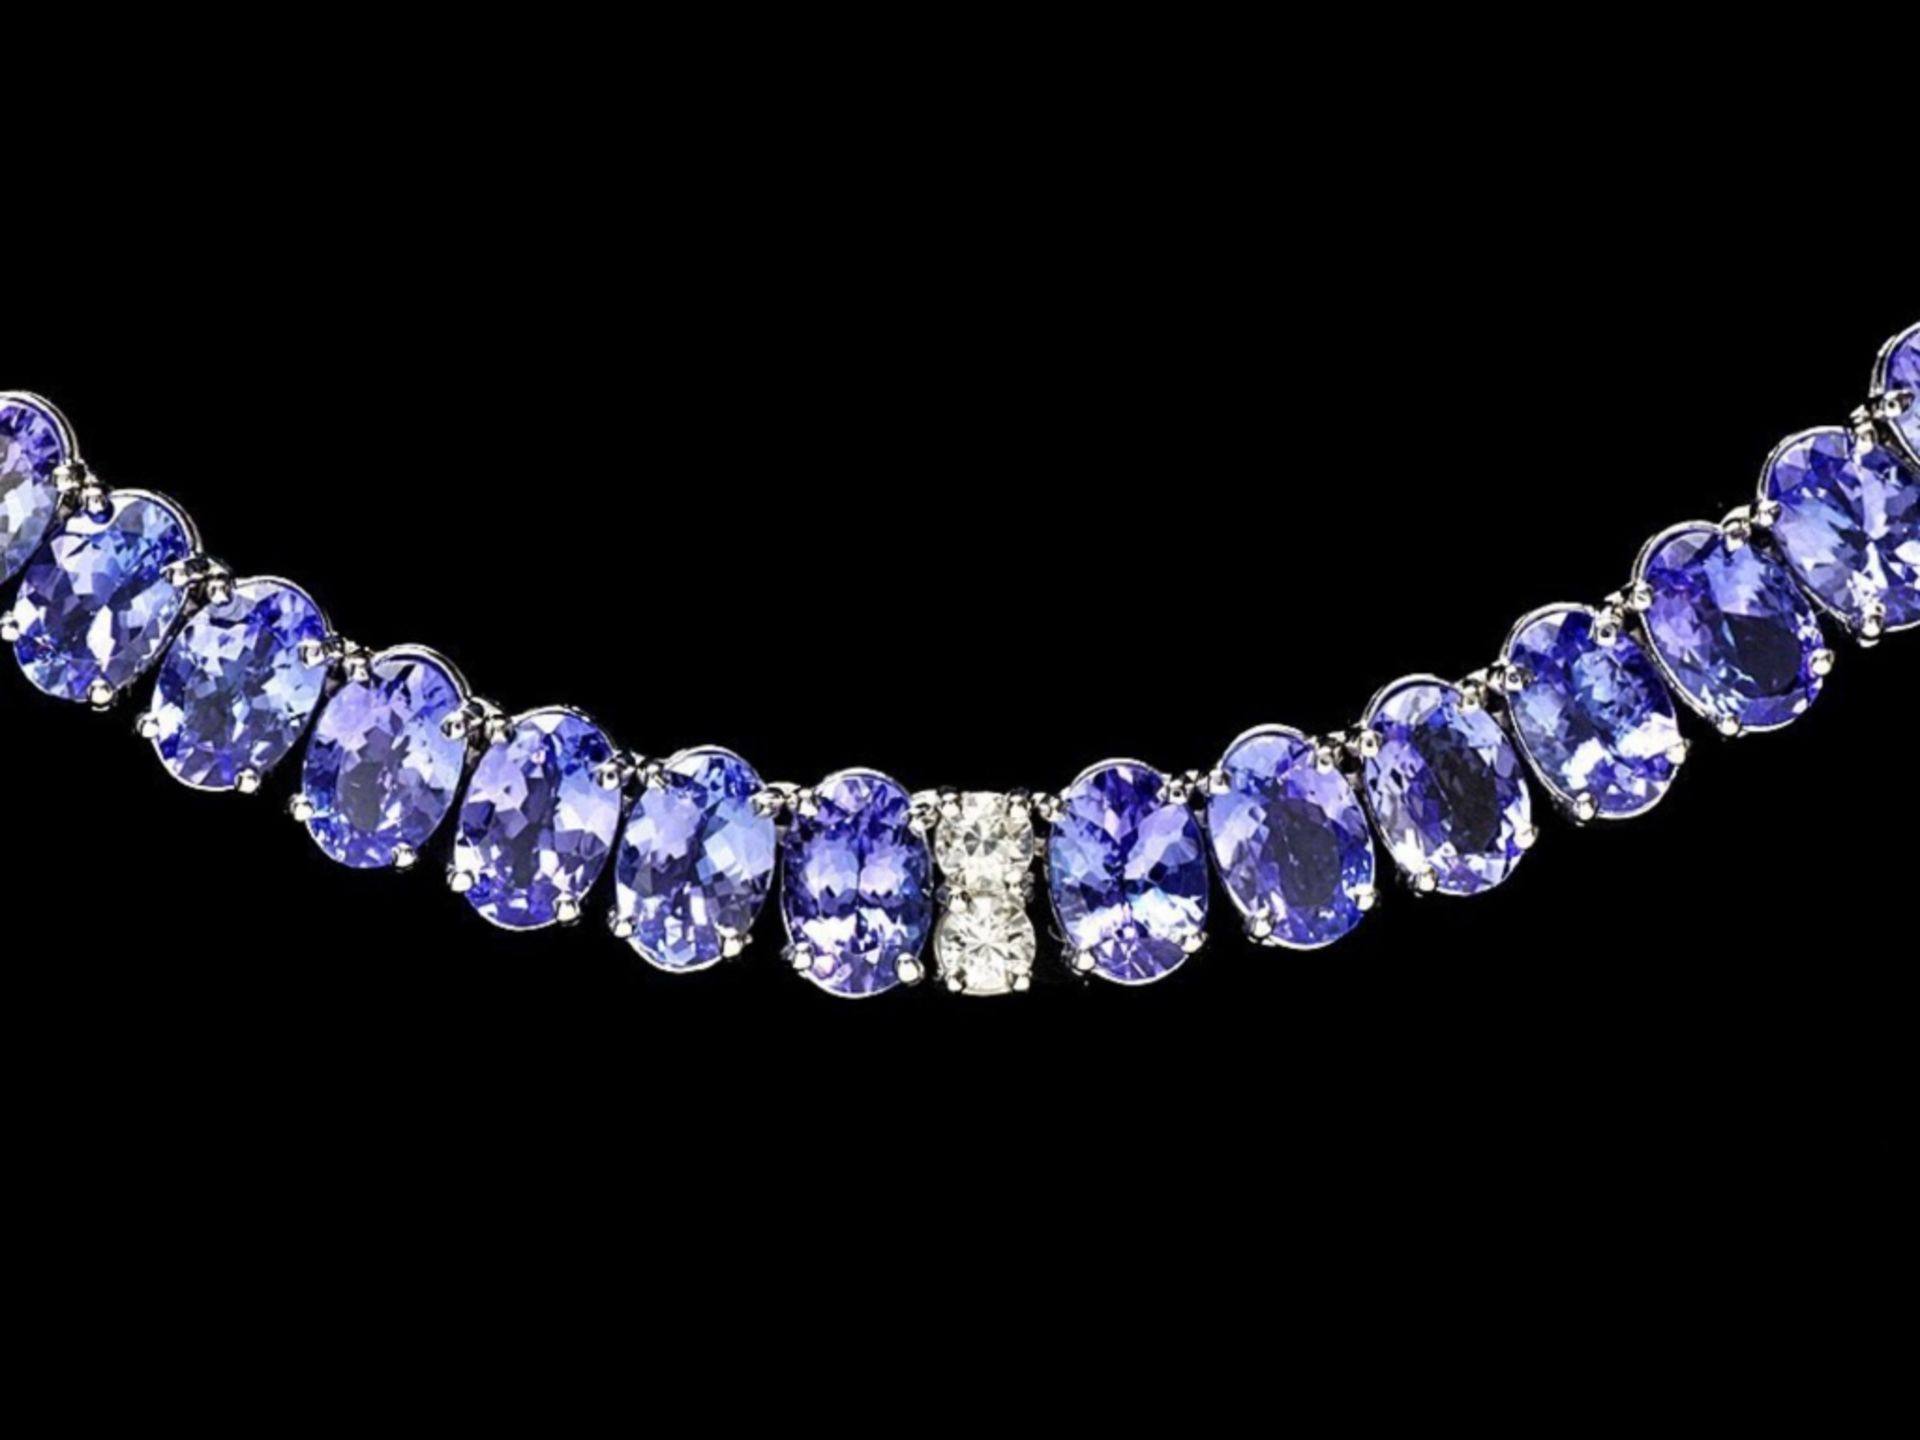 `14k Gold 55.00ct Tanzanite & 1.35ct Diamond Neckl - Image 2 of 5